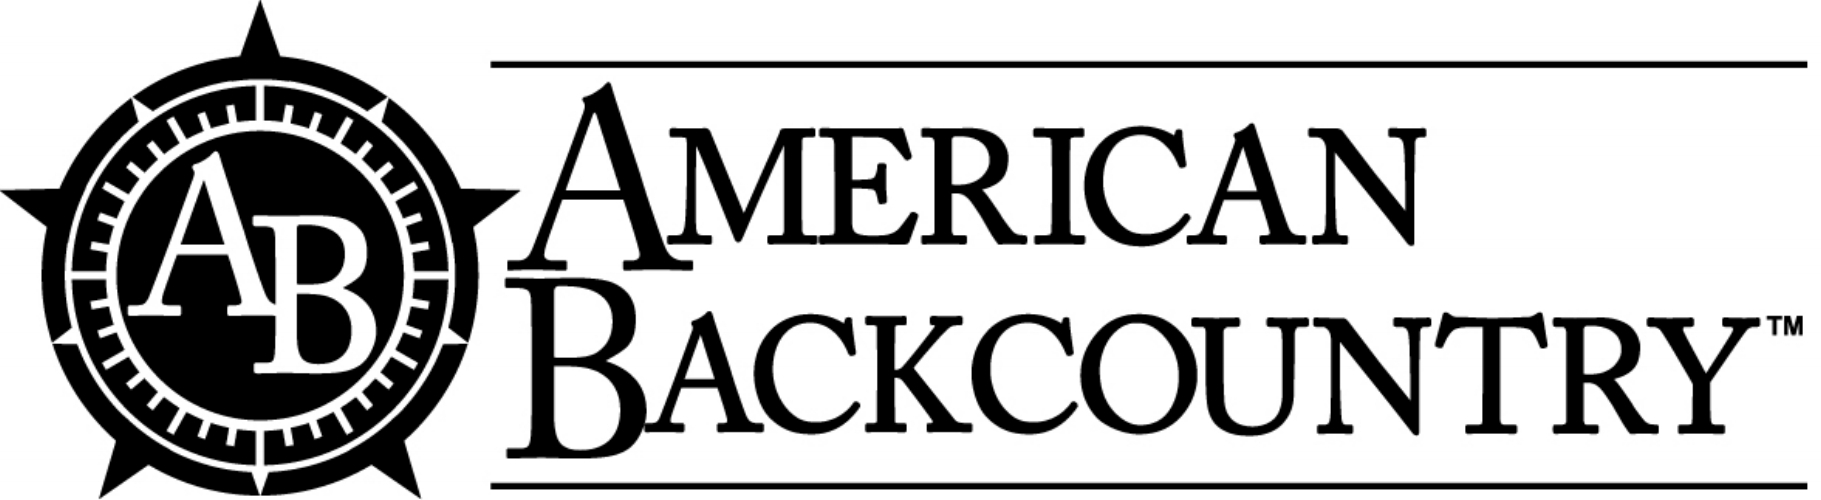 """American Backcountry   We think our customers appreciate the difference between """"any old mountain"""" and the mountain they just climbed. The American Backcountry…   Read More"""